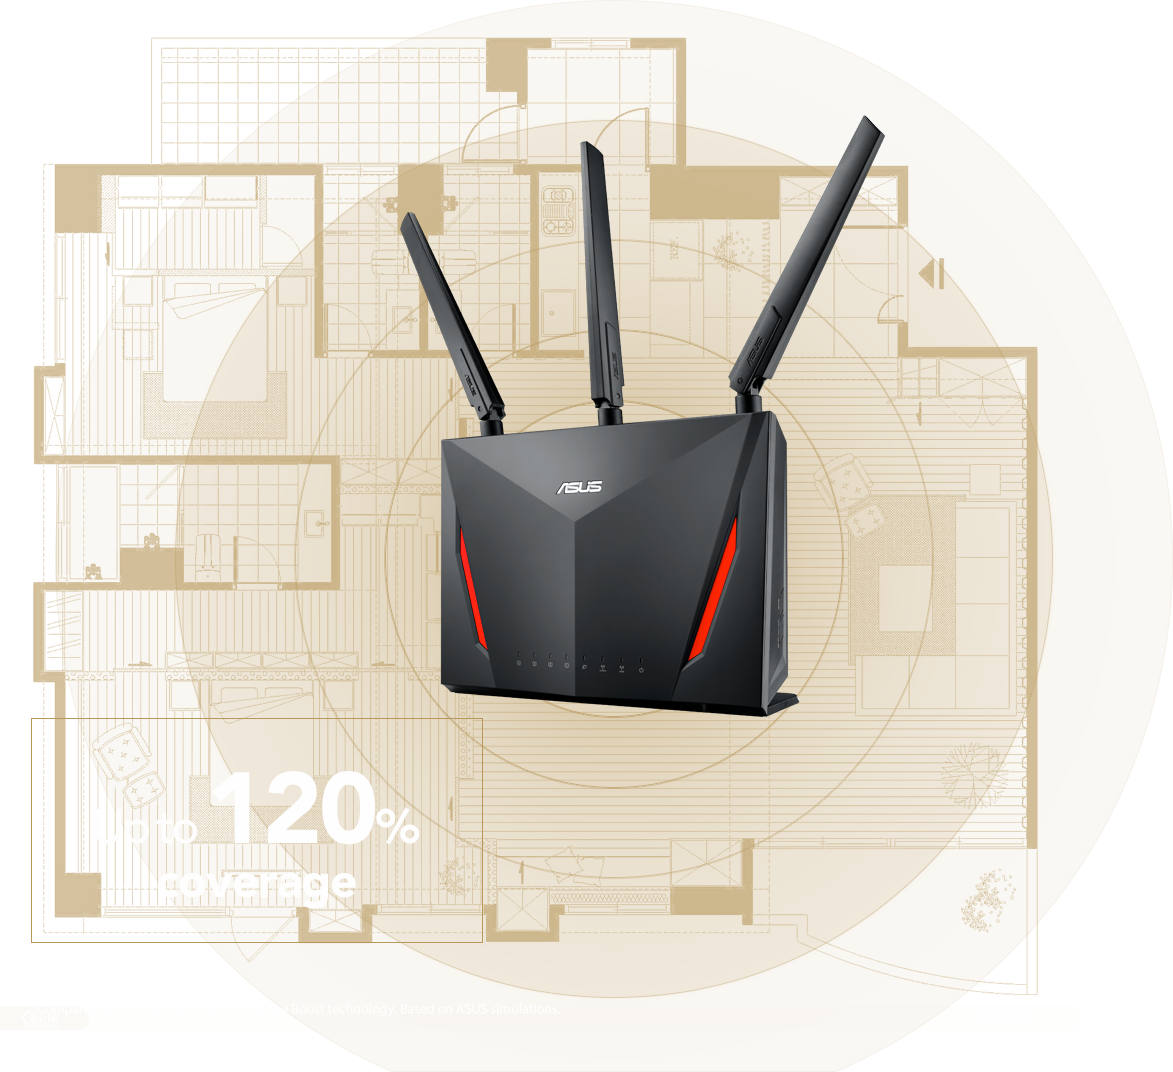 ASUS RT-AC2900 router features RangeBoost increasing up to 120% Wi-Fi signal coverage.